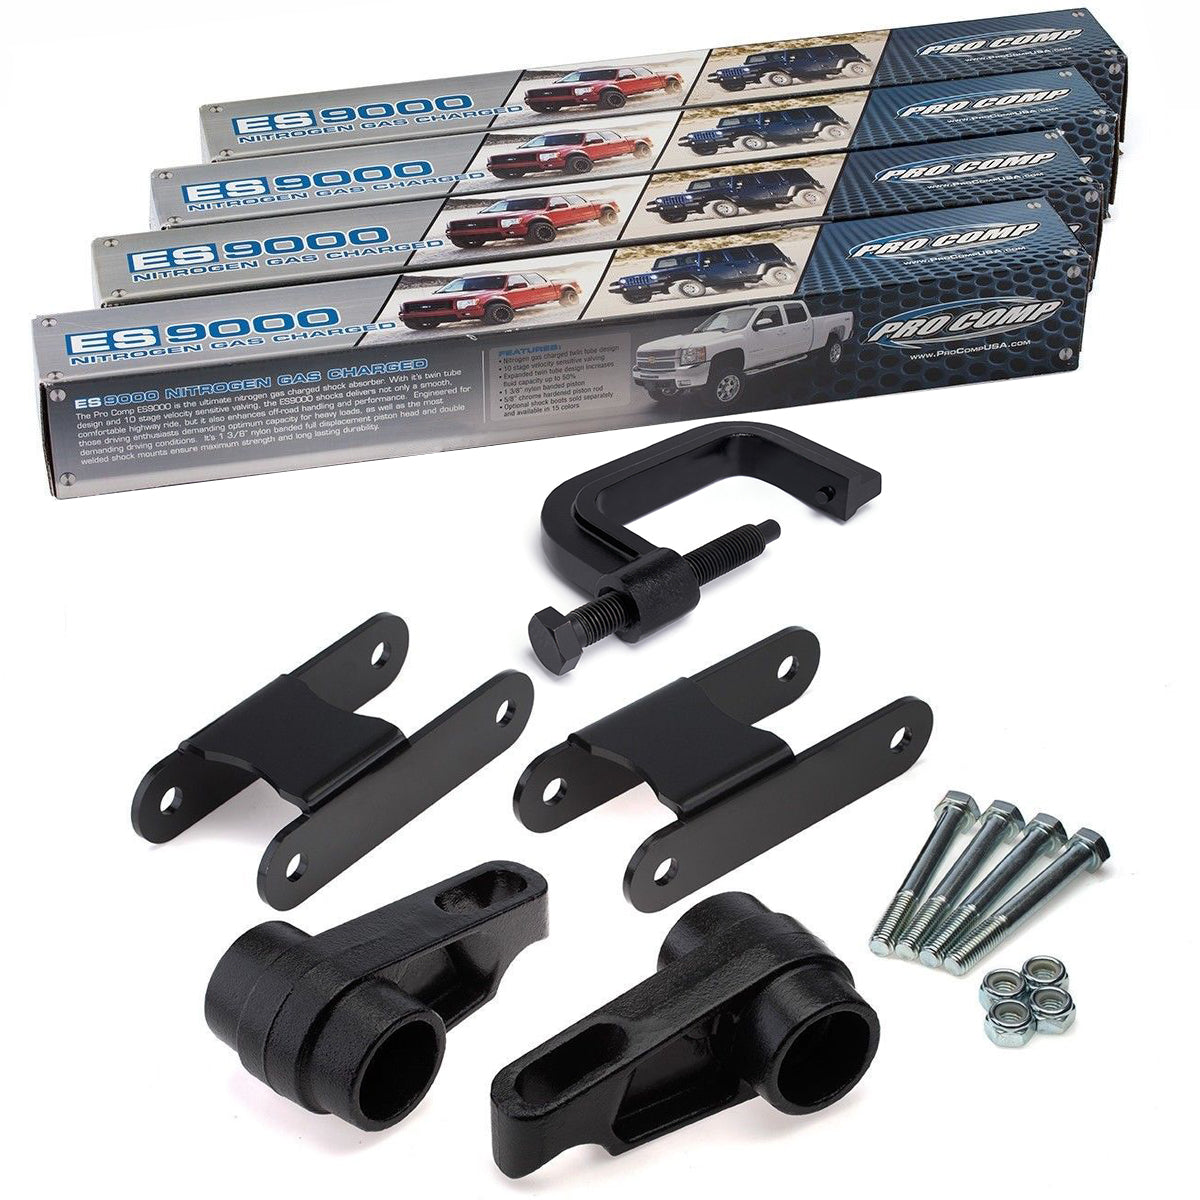 2004-2012 Chevrolet Colorado Full Lift Kit with Extended Shocks and Torsion Key Unloading/Removal Tool